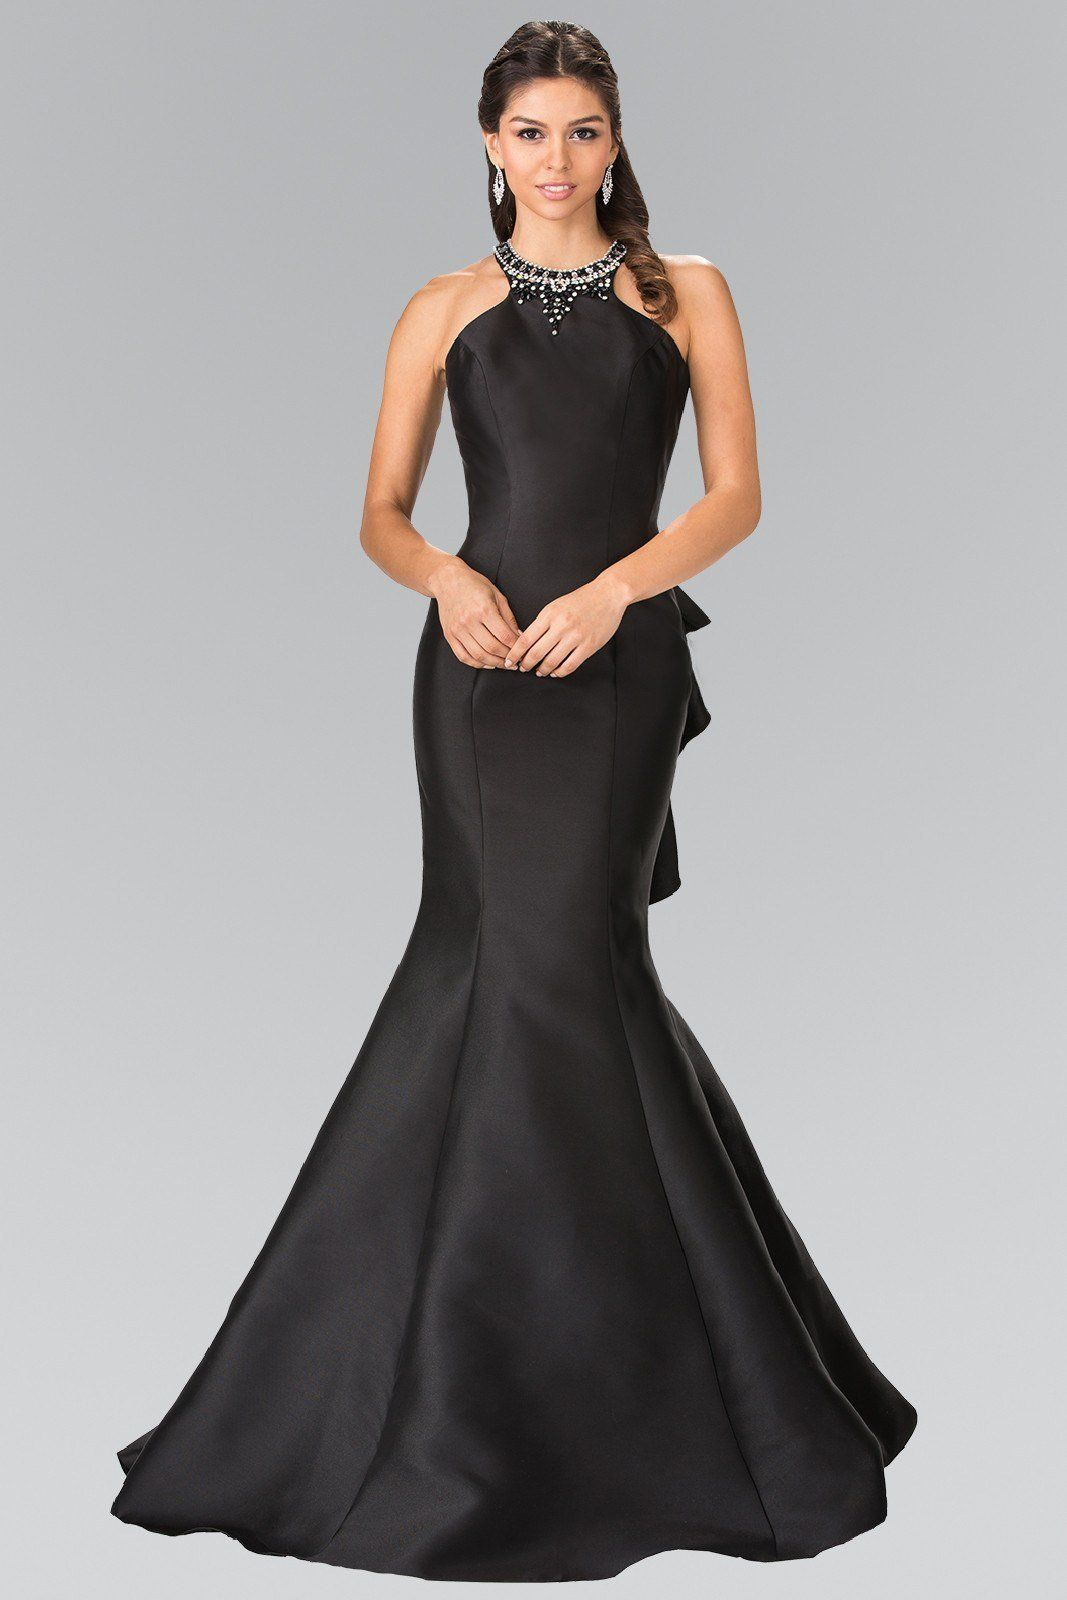 f4b0632cb45 Simply gorgeous mermaid prom gown with open back. A trendy yet sexy dress  with fitted satin skirt. A fab high neck prom dress and formal gown perfect  for a ...